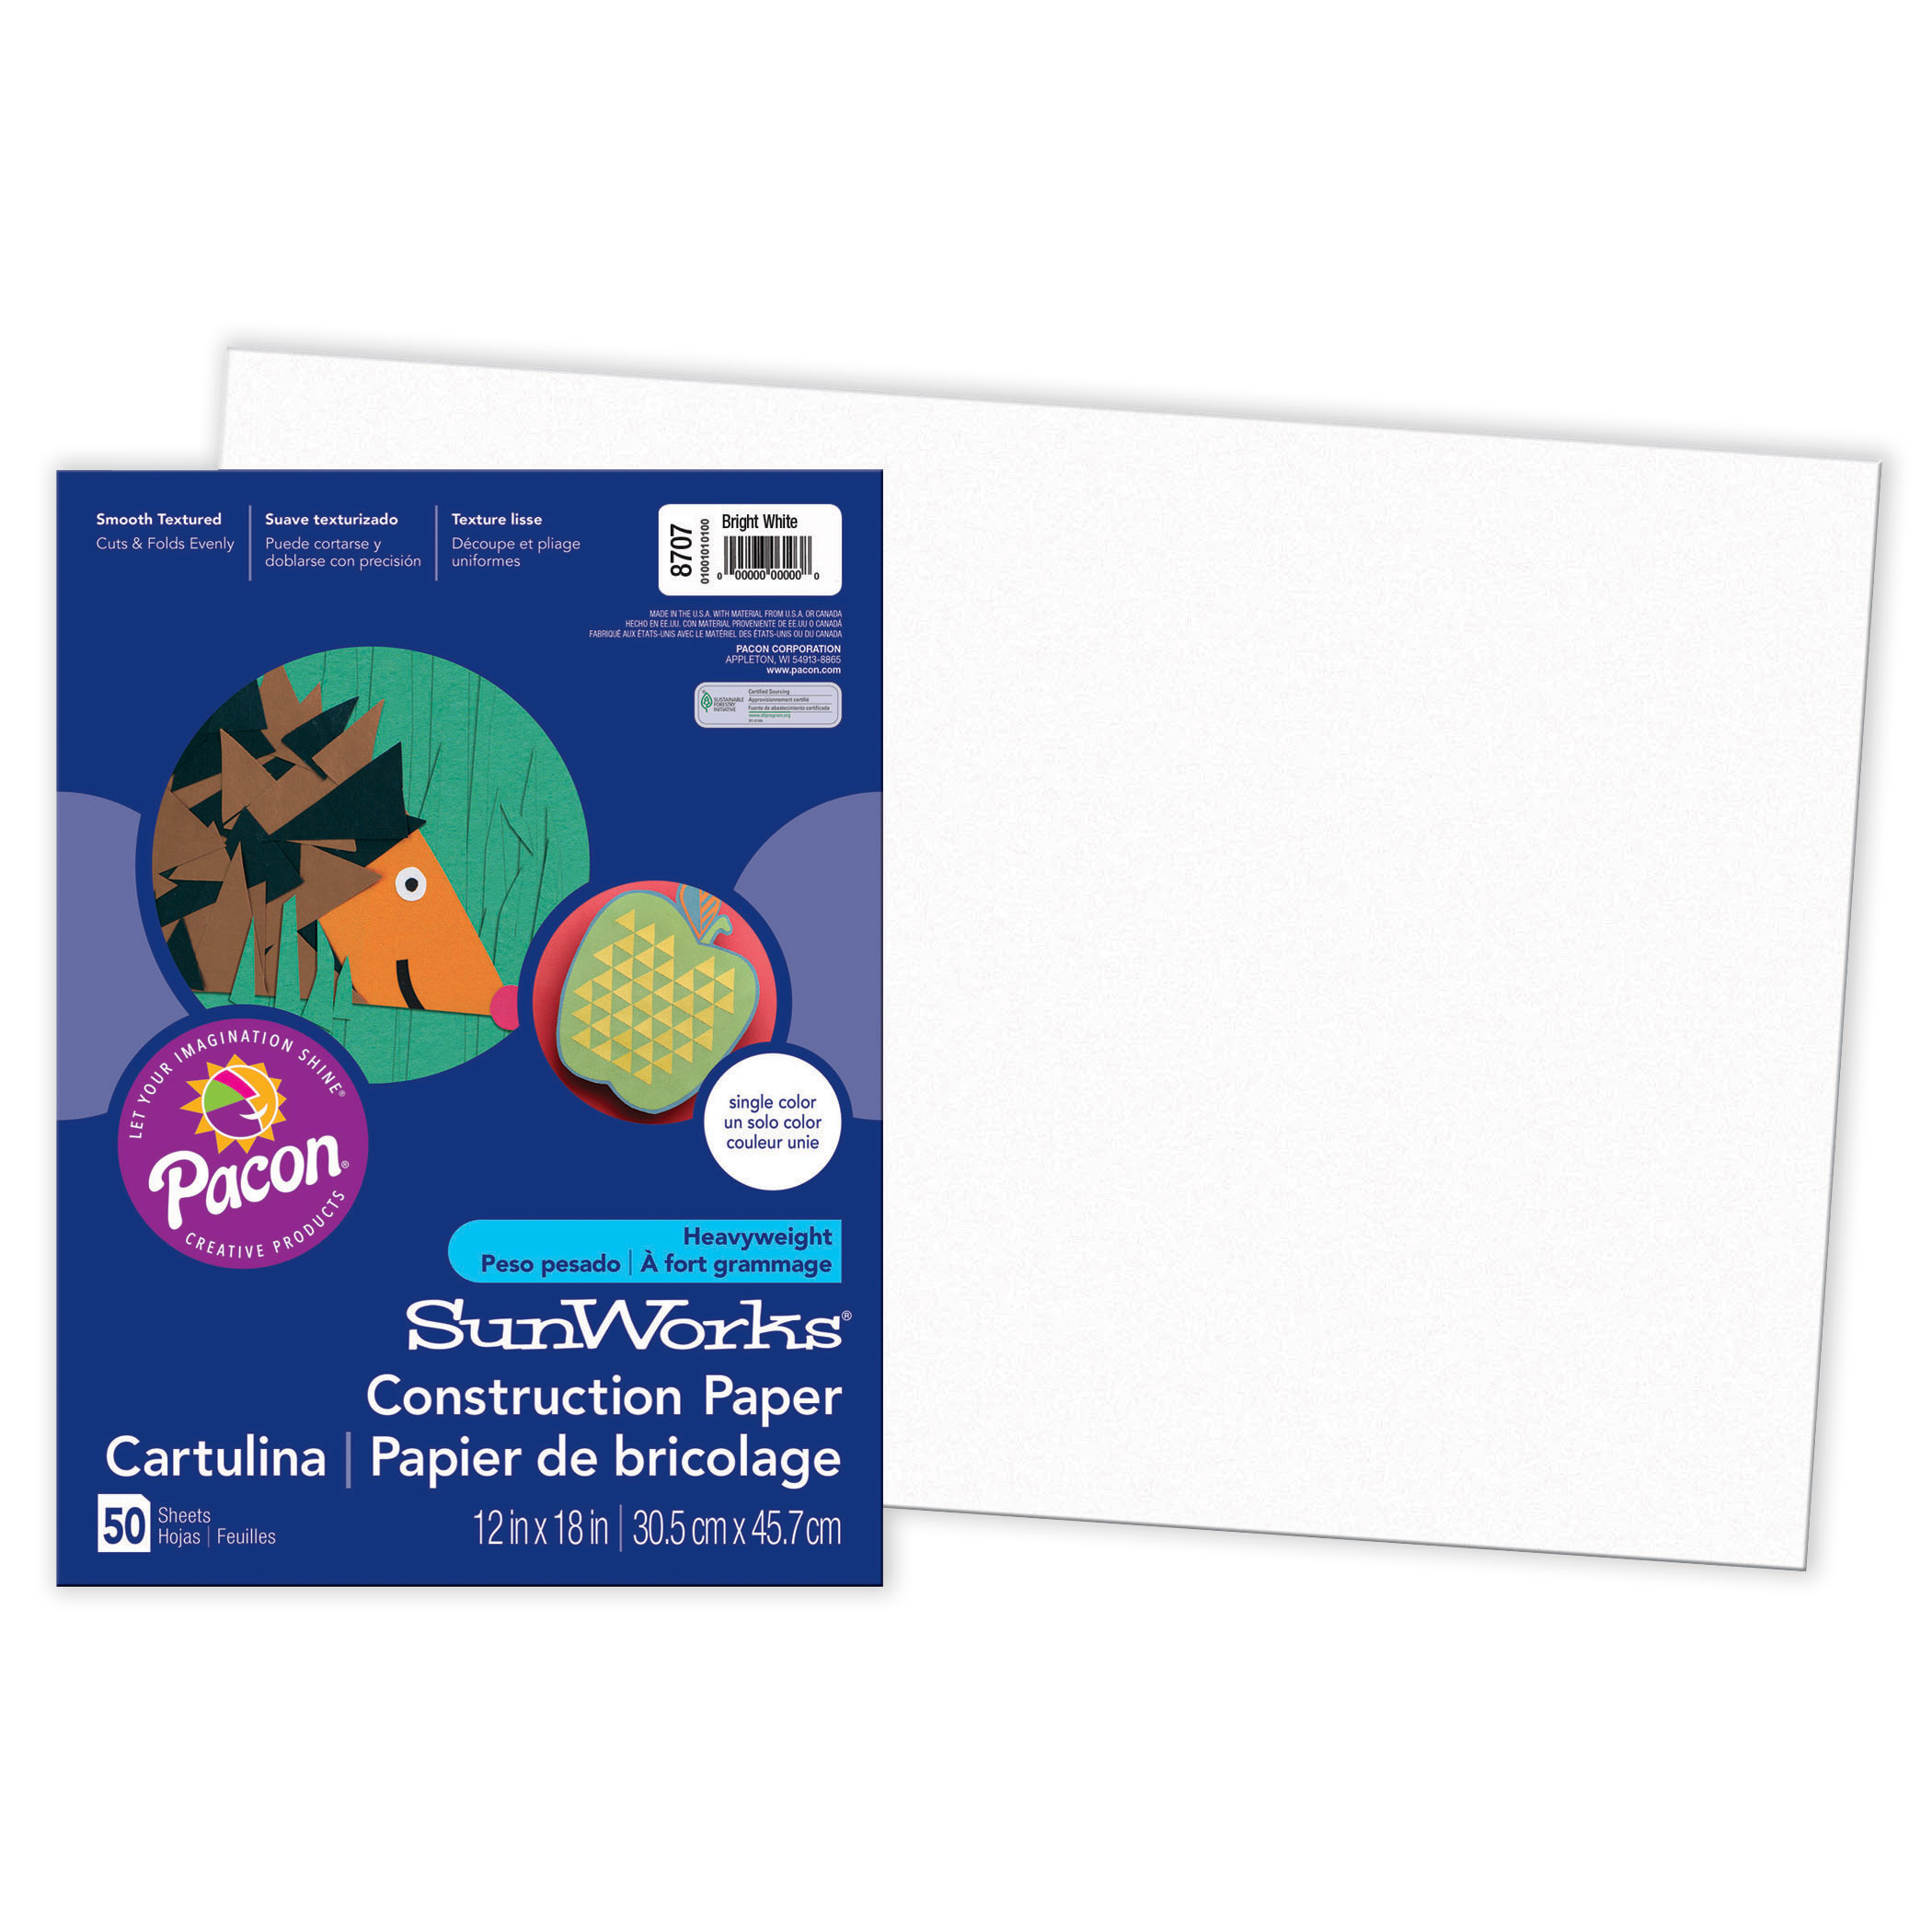 "Pacon® SunWorks® Construction Paper, 12"" x 18"", Bright White - 50 Sheets per pack, 5 packs"